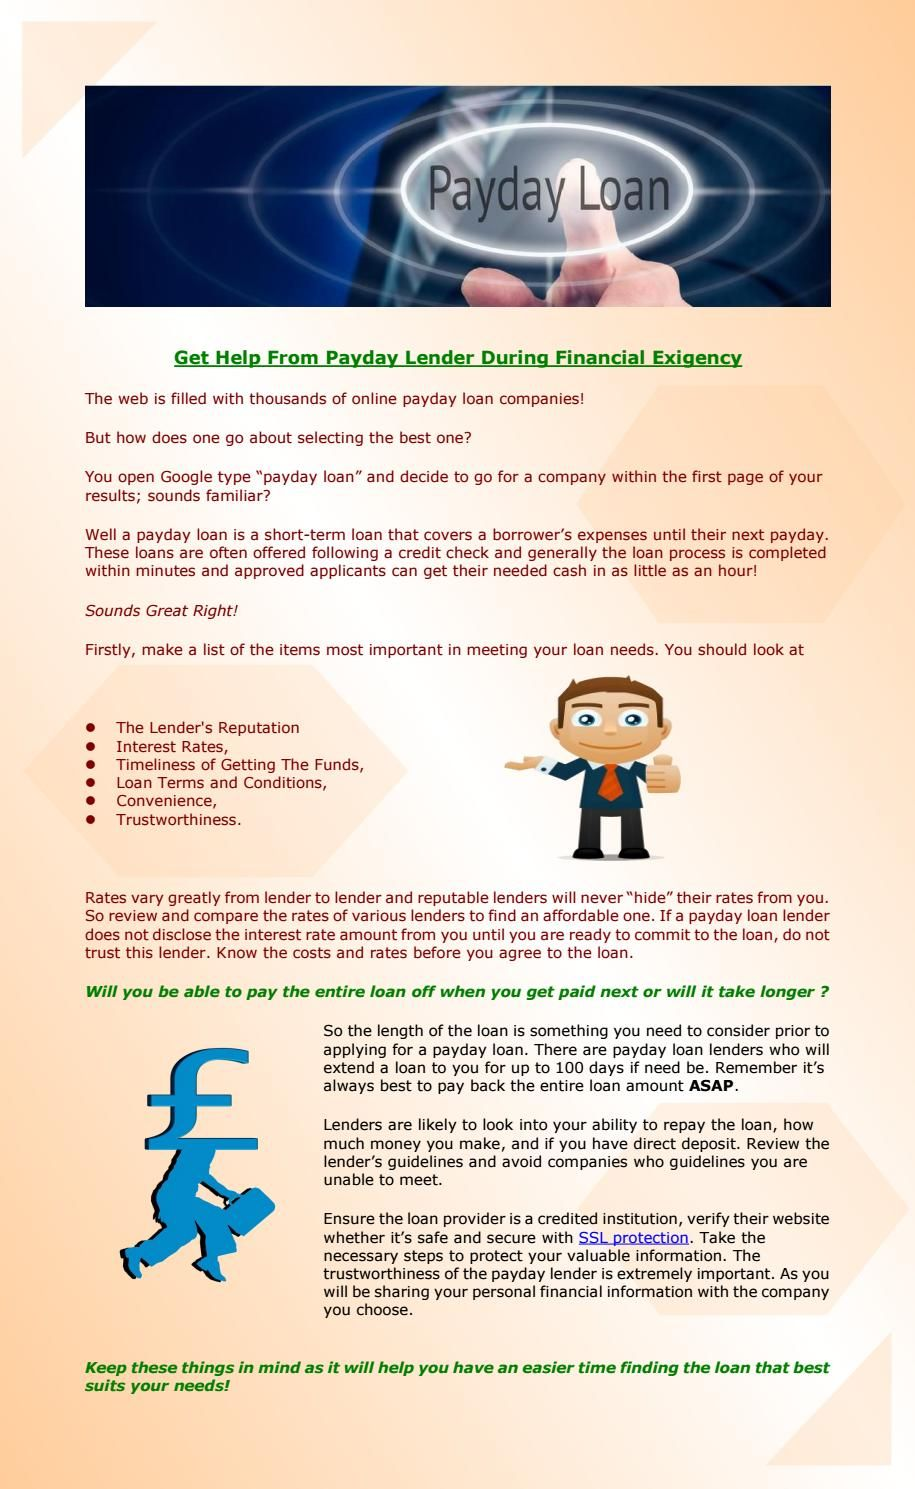 Get Help From Payday Lender Like The Quick Loan Shop Ltd During Financial Exigency Payday Loans Payday Loans Online Payday